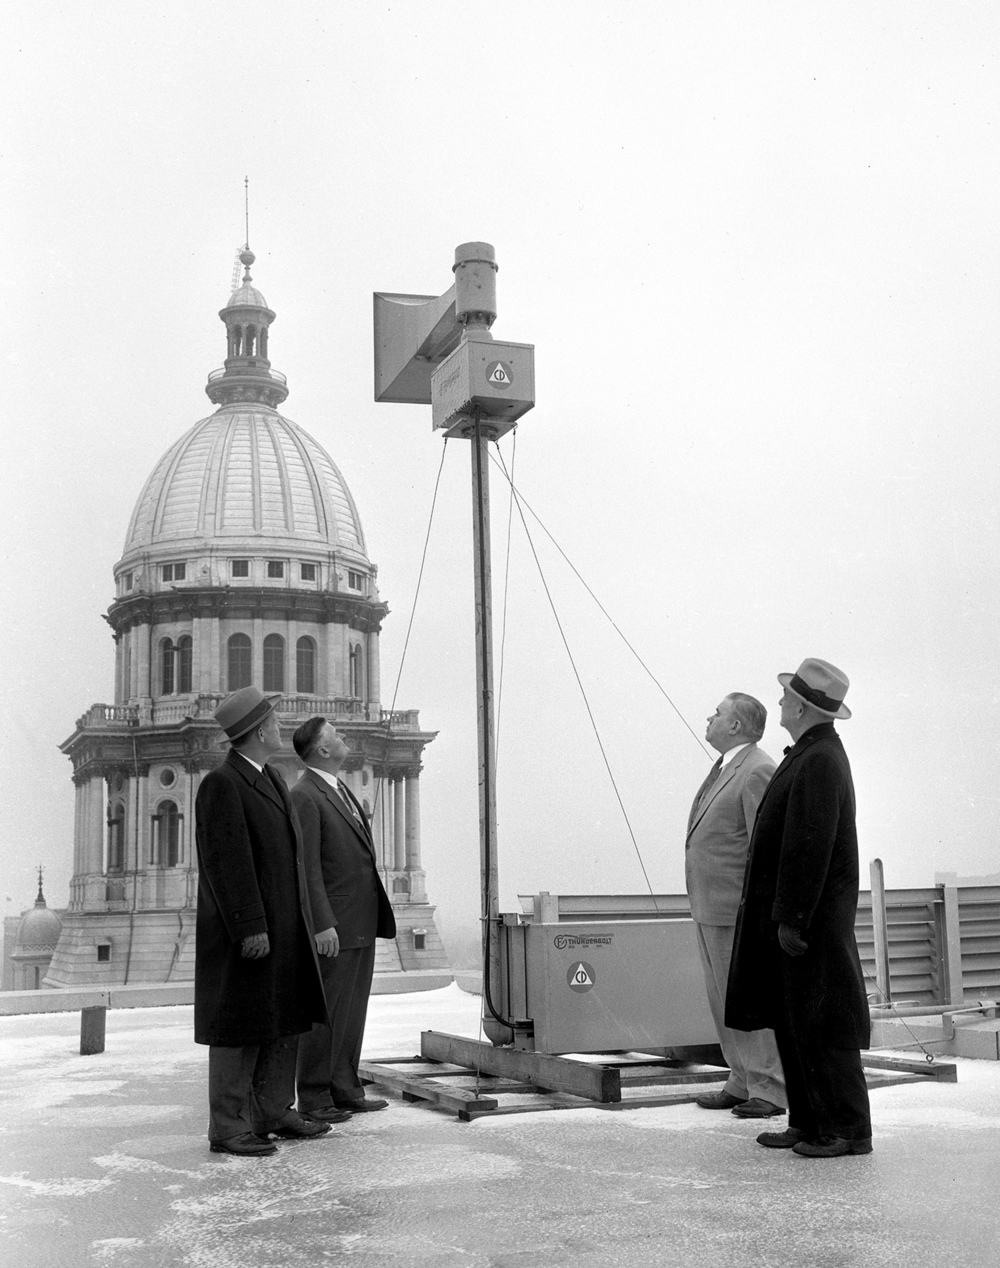 New air raid siren or weather/tornado warning siren rooftop near Illinois State Capitol, Jan. 25, 1957.